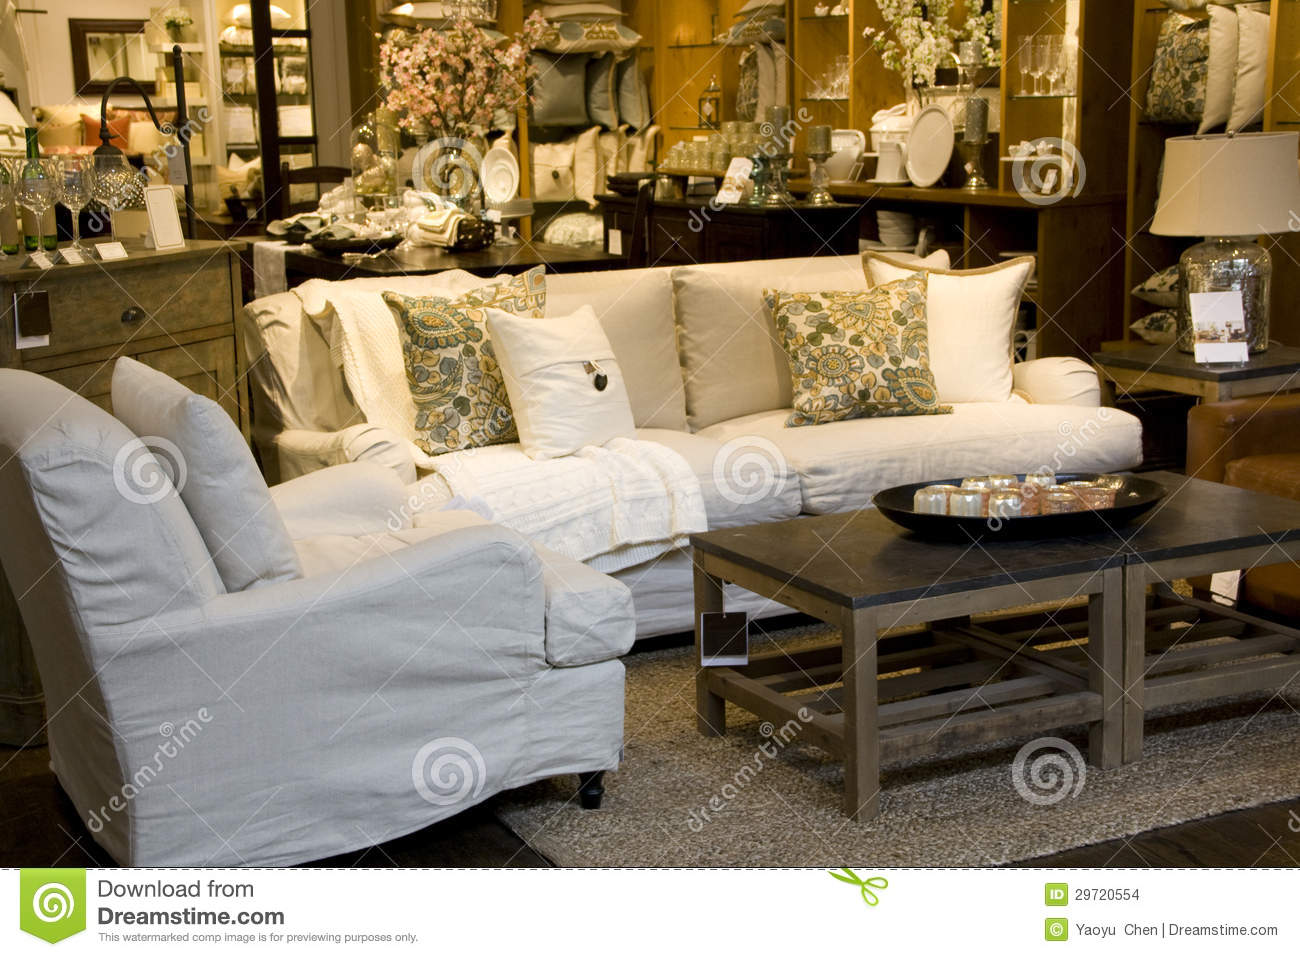 Furniture and home decor store stock images image 29720554 for Home design furniture store